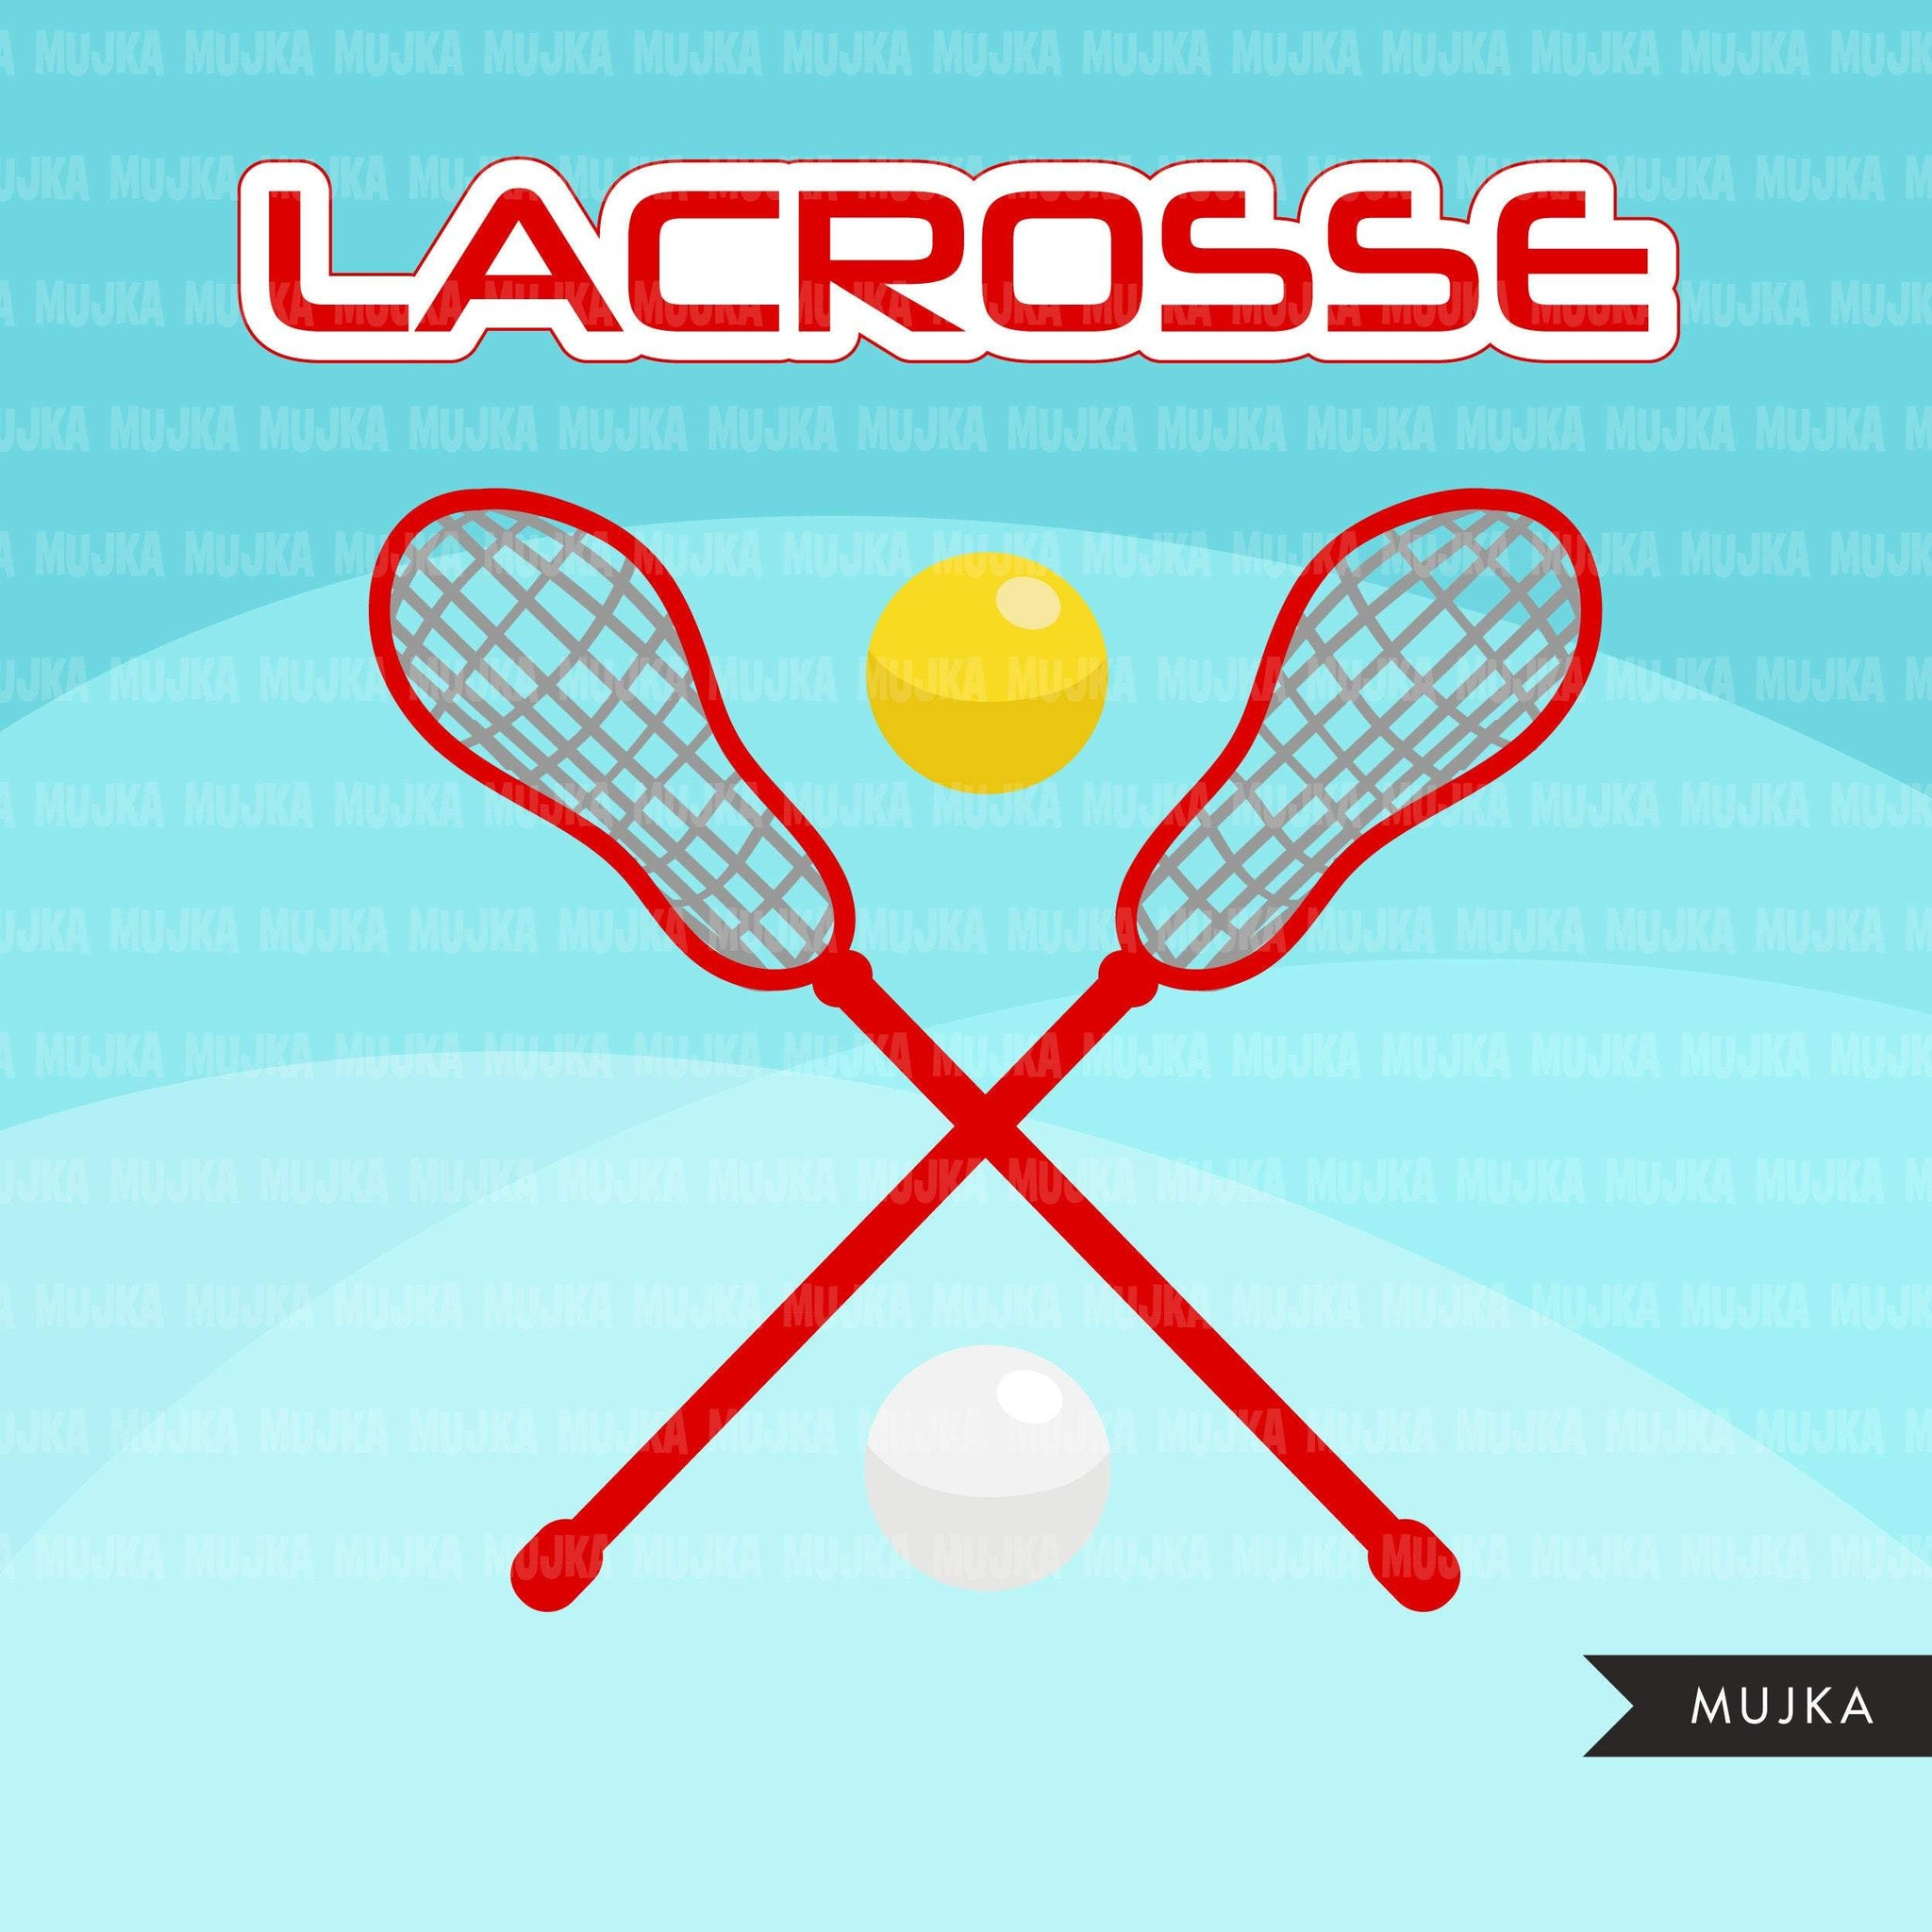 Lacrosse Clipart graphics, girls lacrosse player characters, stickers, commercial use, school activity clip art